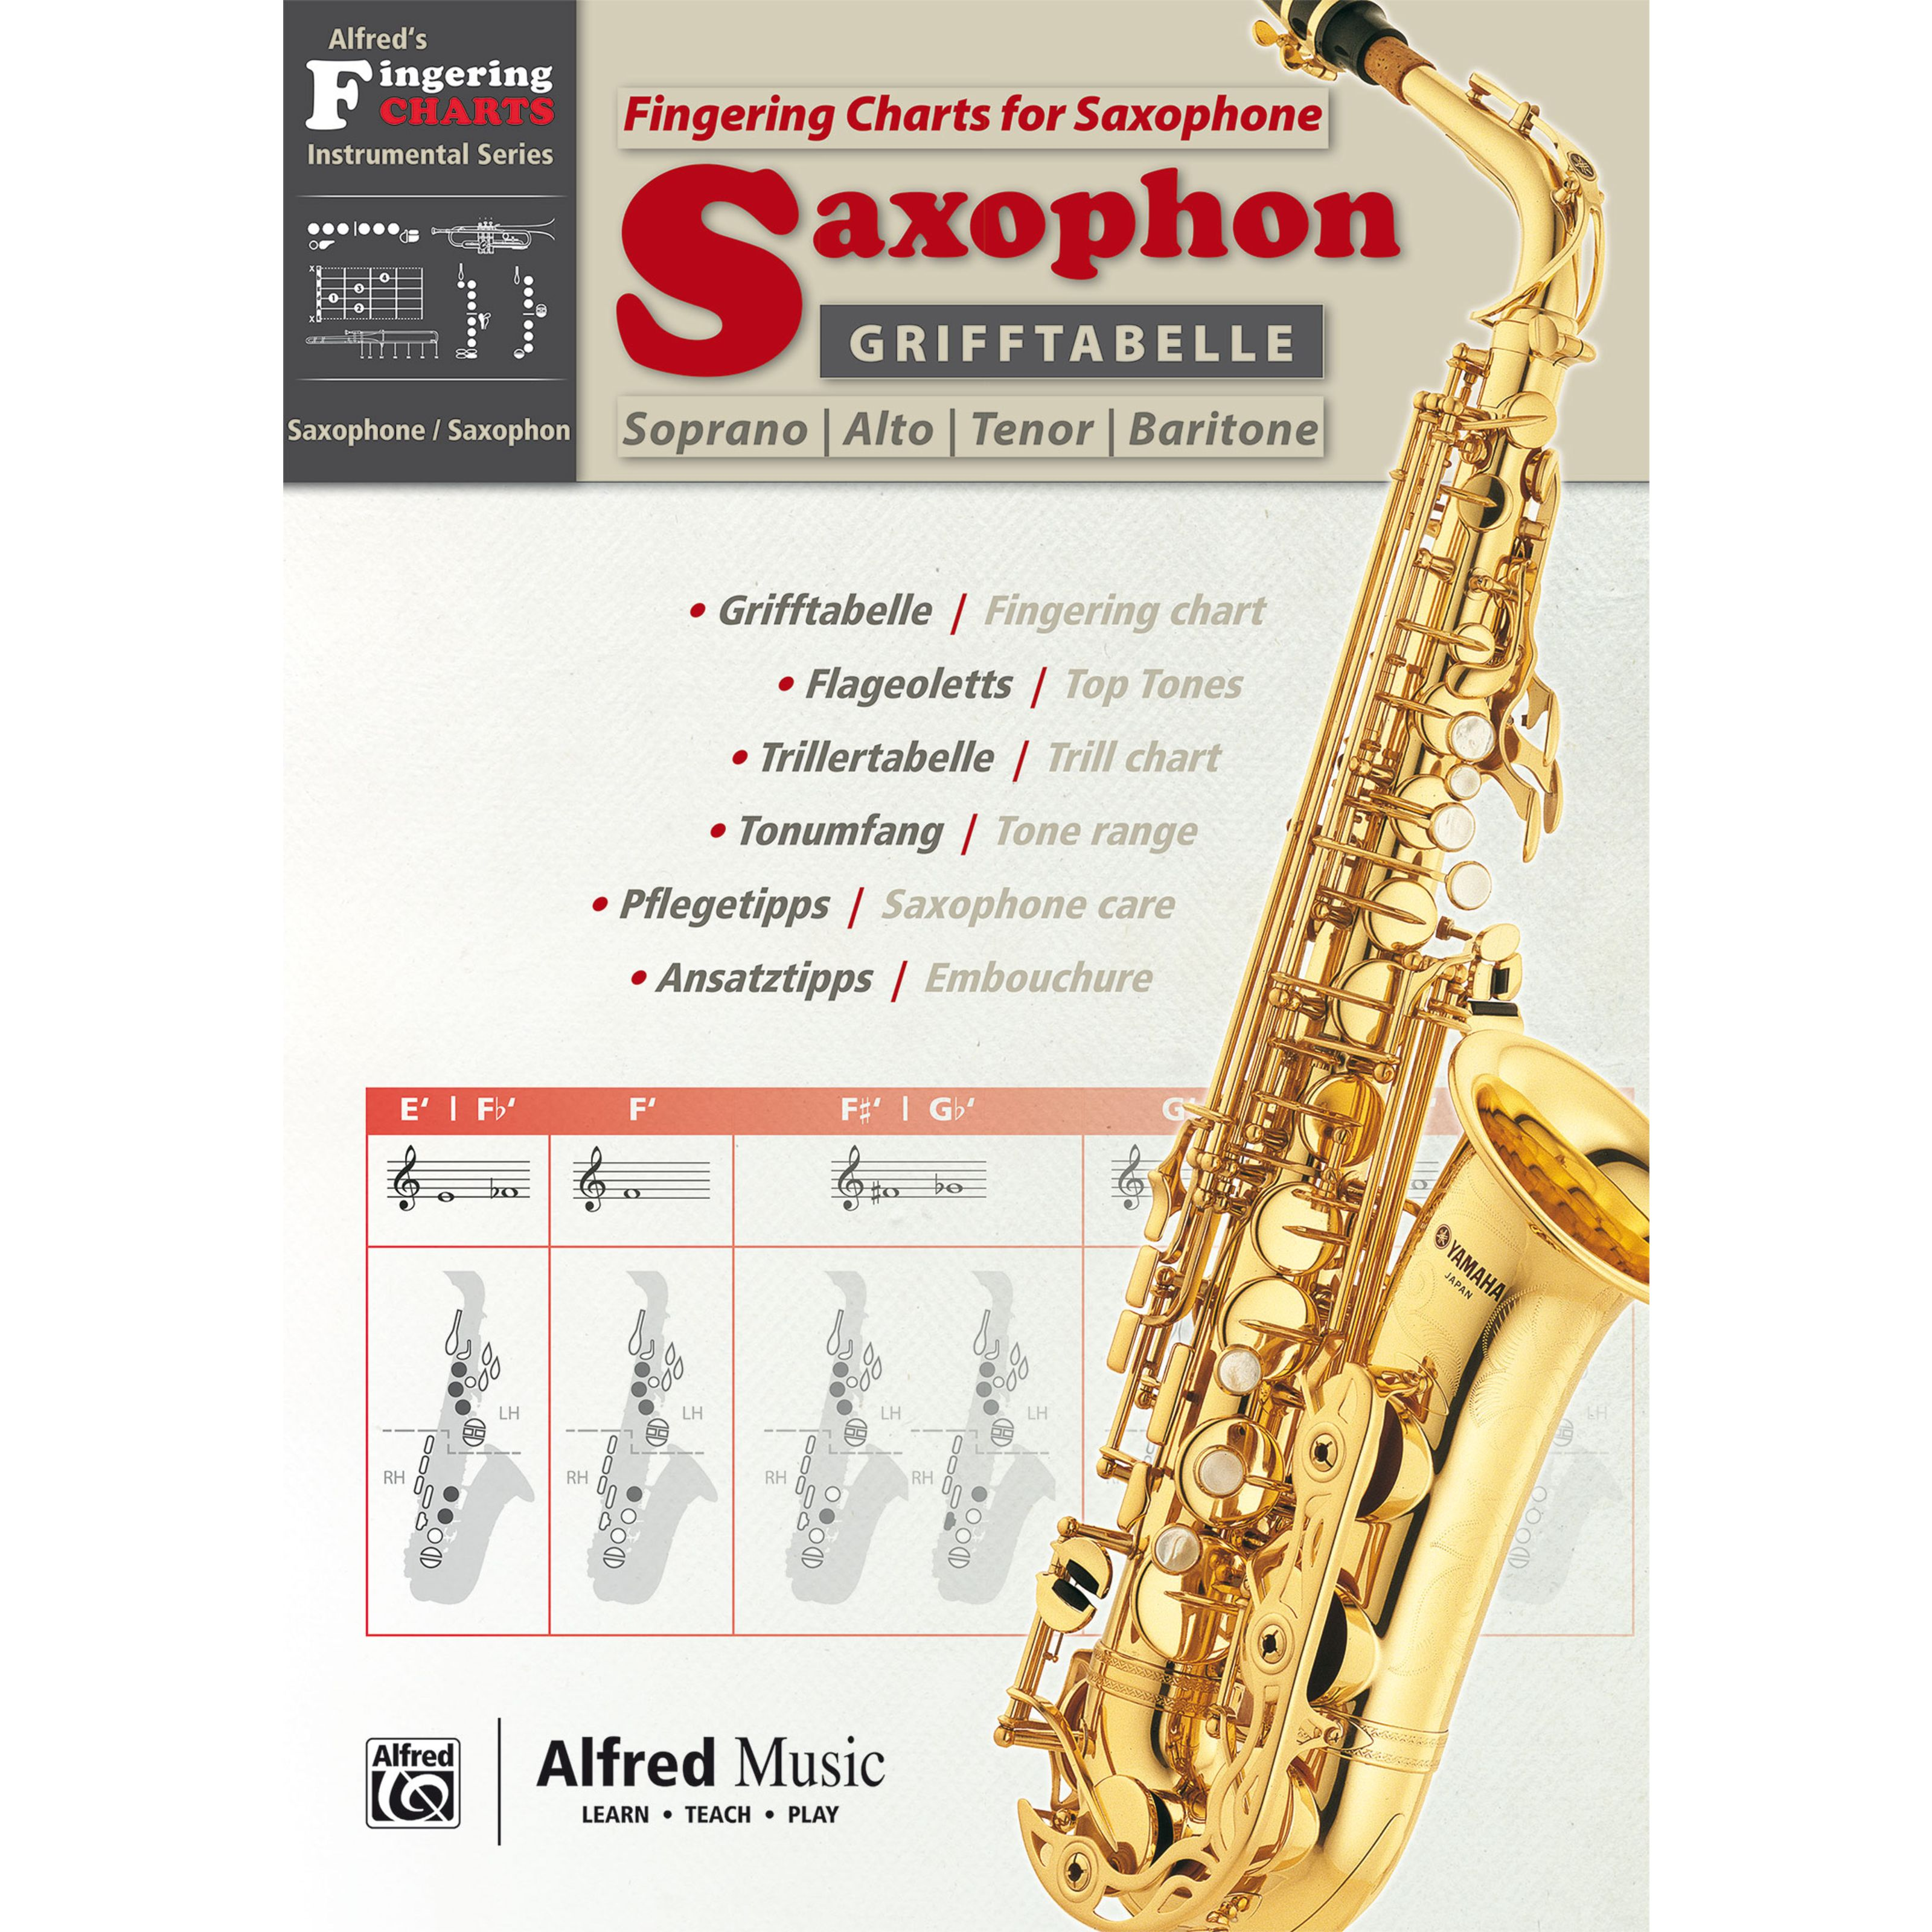 Alfred Music - Grifftabelle Saxophon 00-20229G